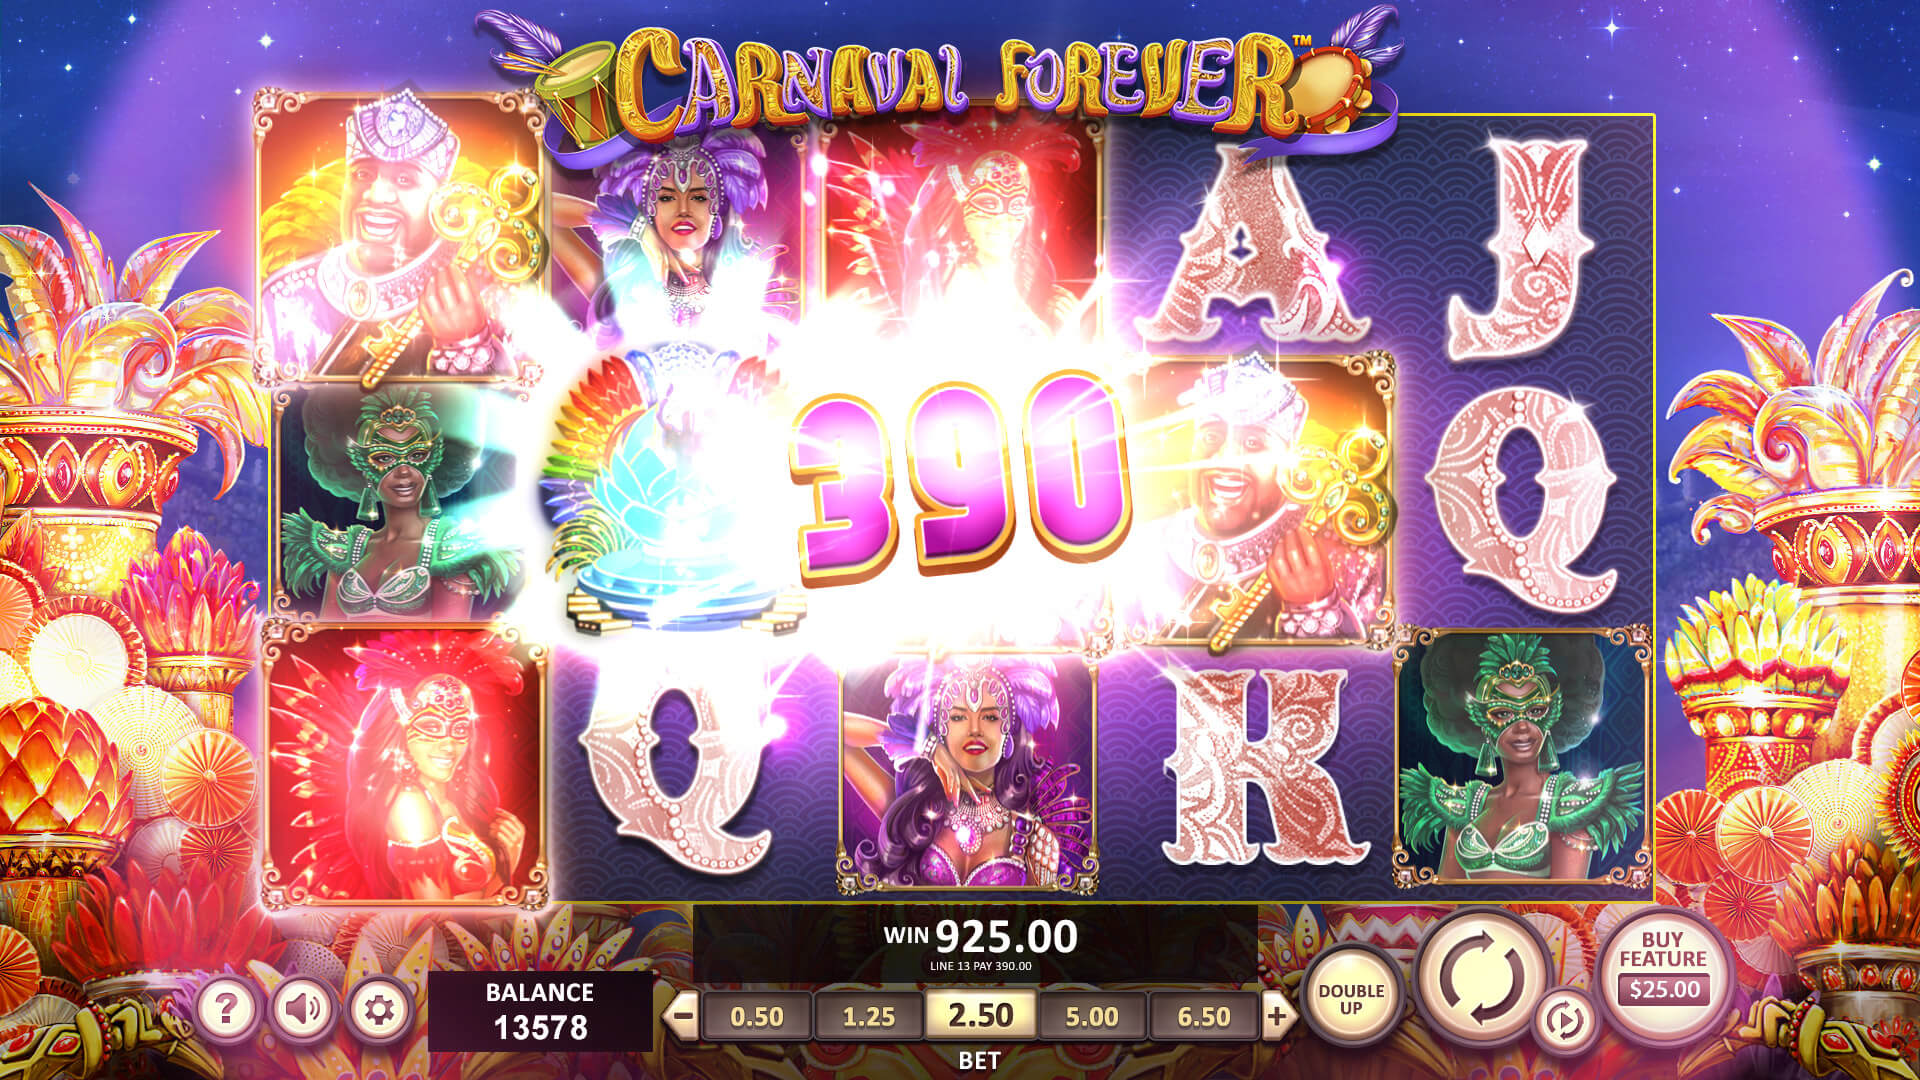 Online Casino Slot Carnaval Forever from Betsoft